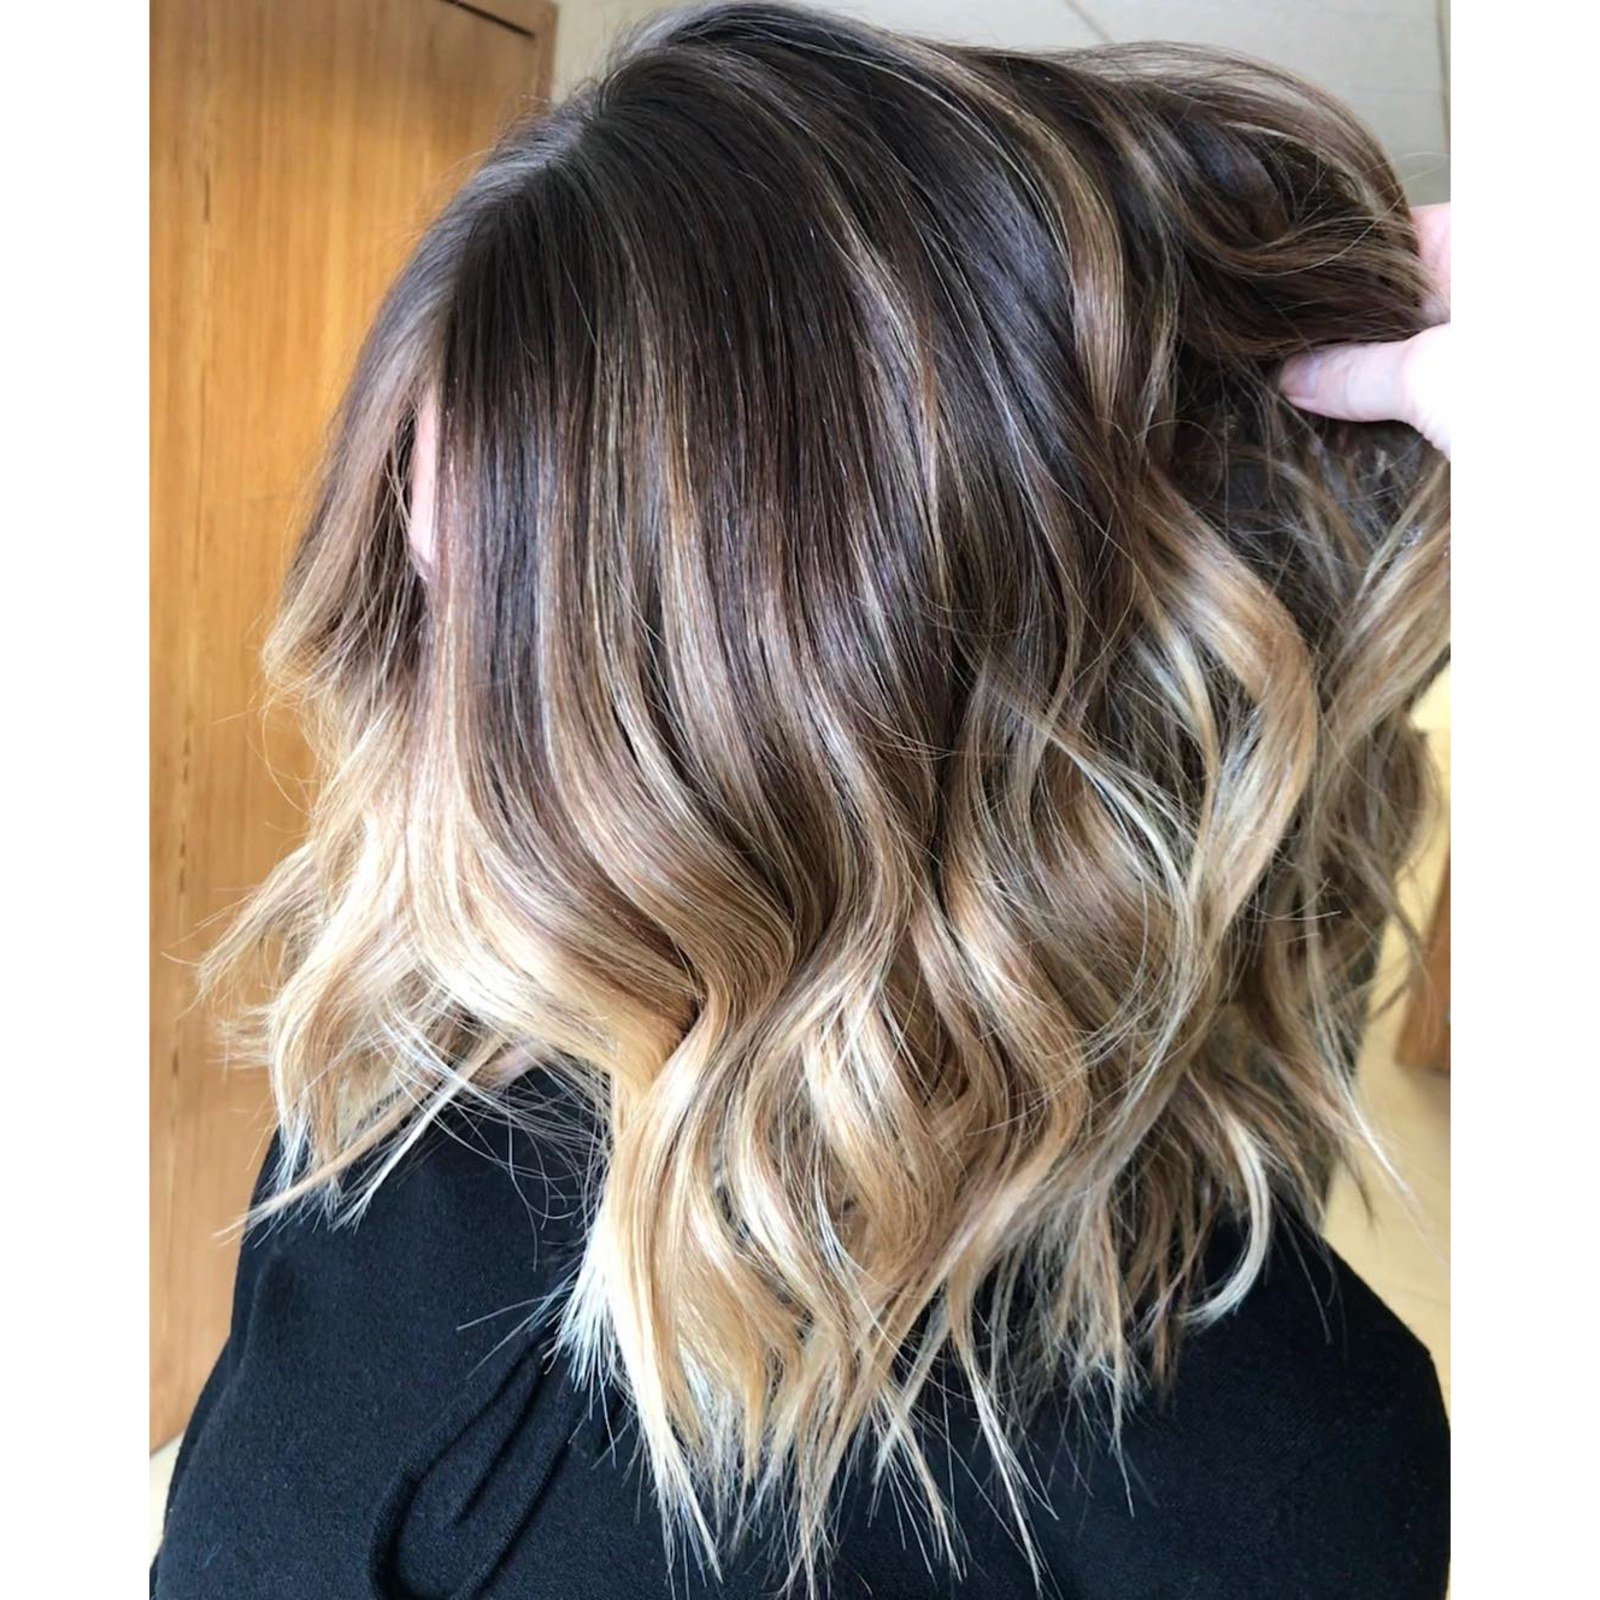 21 Bronde Hair Color Ideas That Are Flattering On Everyone – Allure Within Tousled Wavy Bronde Bob Hairstyles (View 7 of 20)